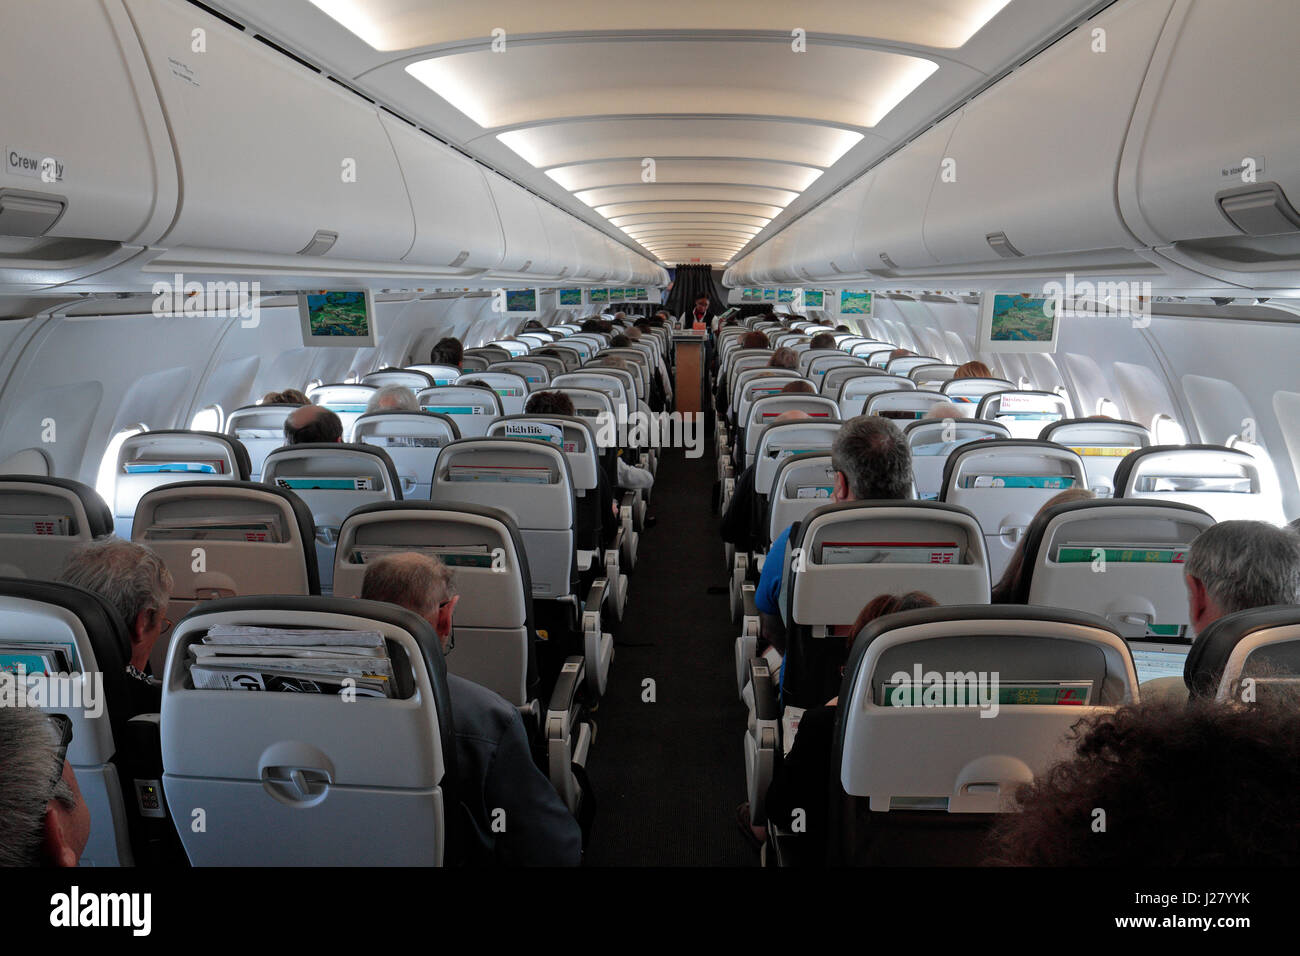 General view down plane cabin of a full passenger plane (in this case a BA Airbus A320-200). - Stock Image